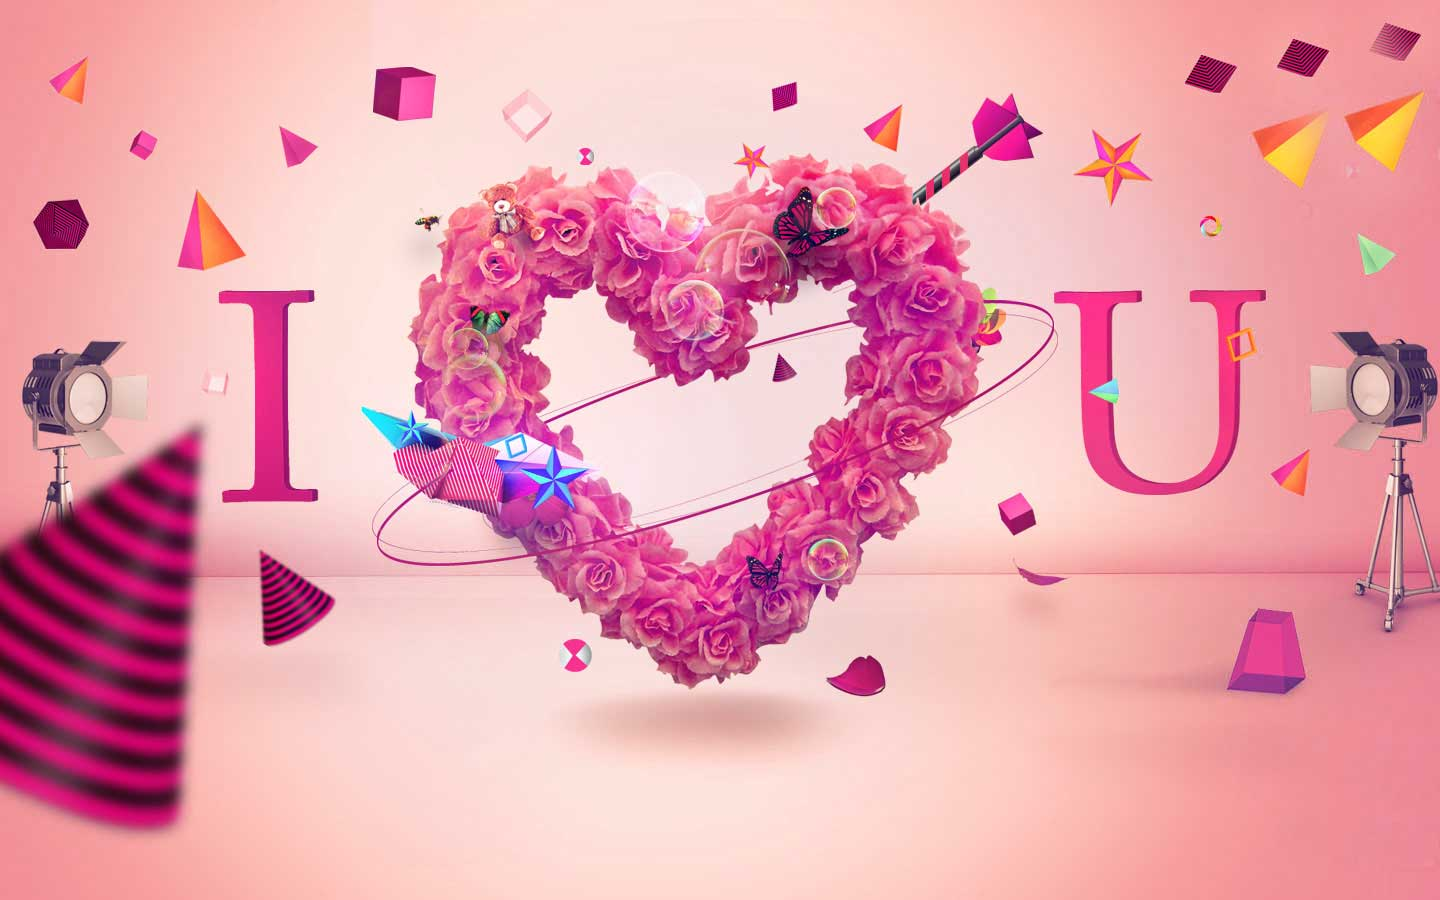 love you images